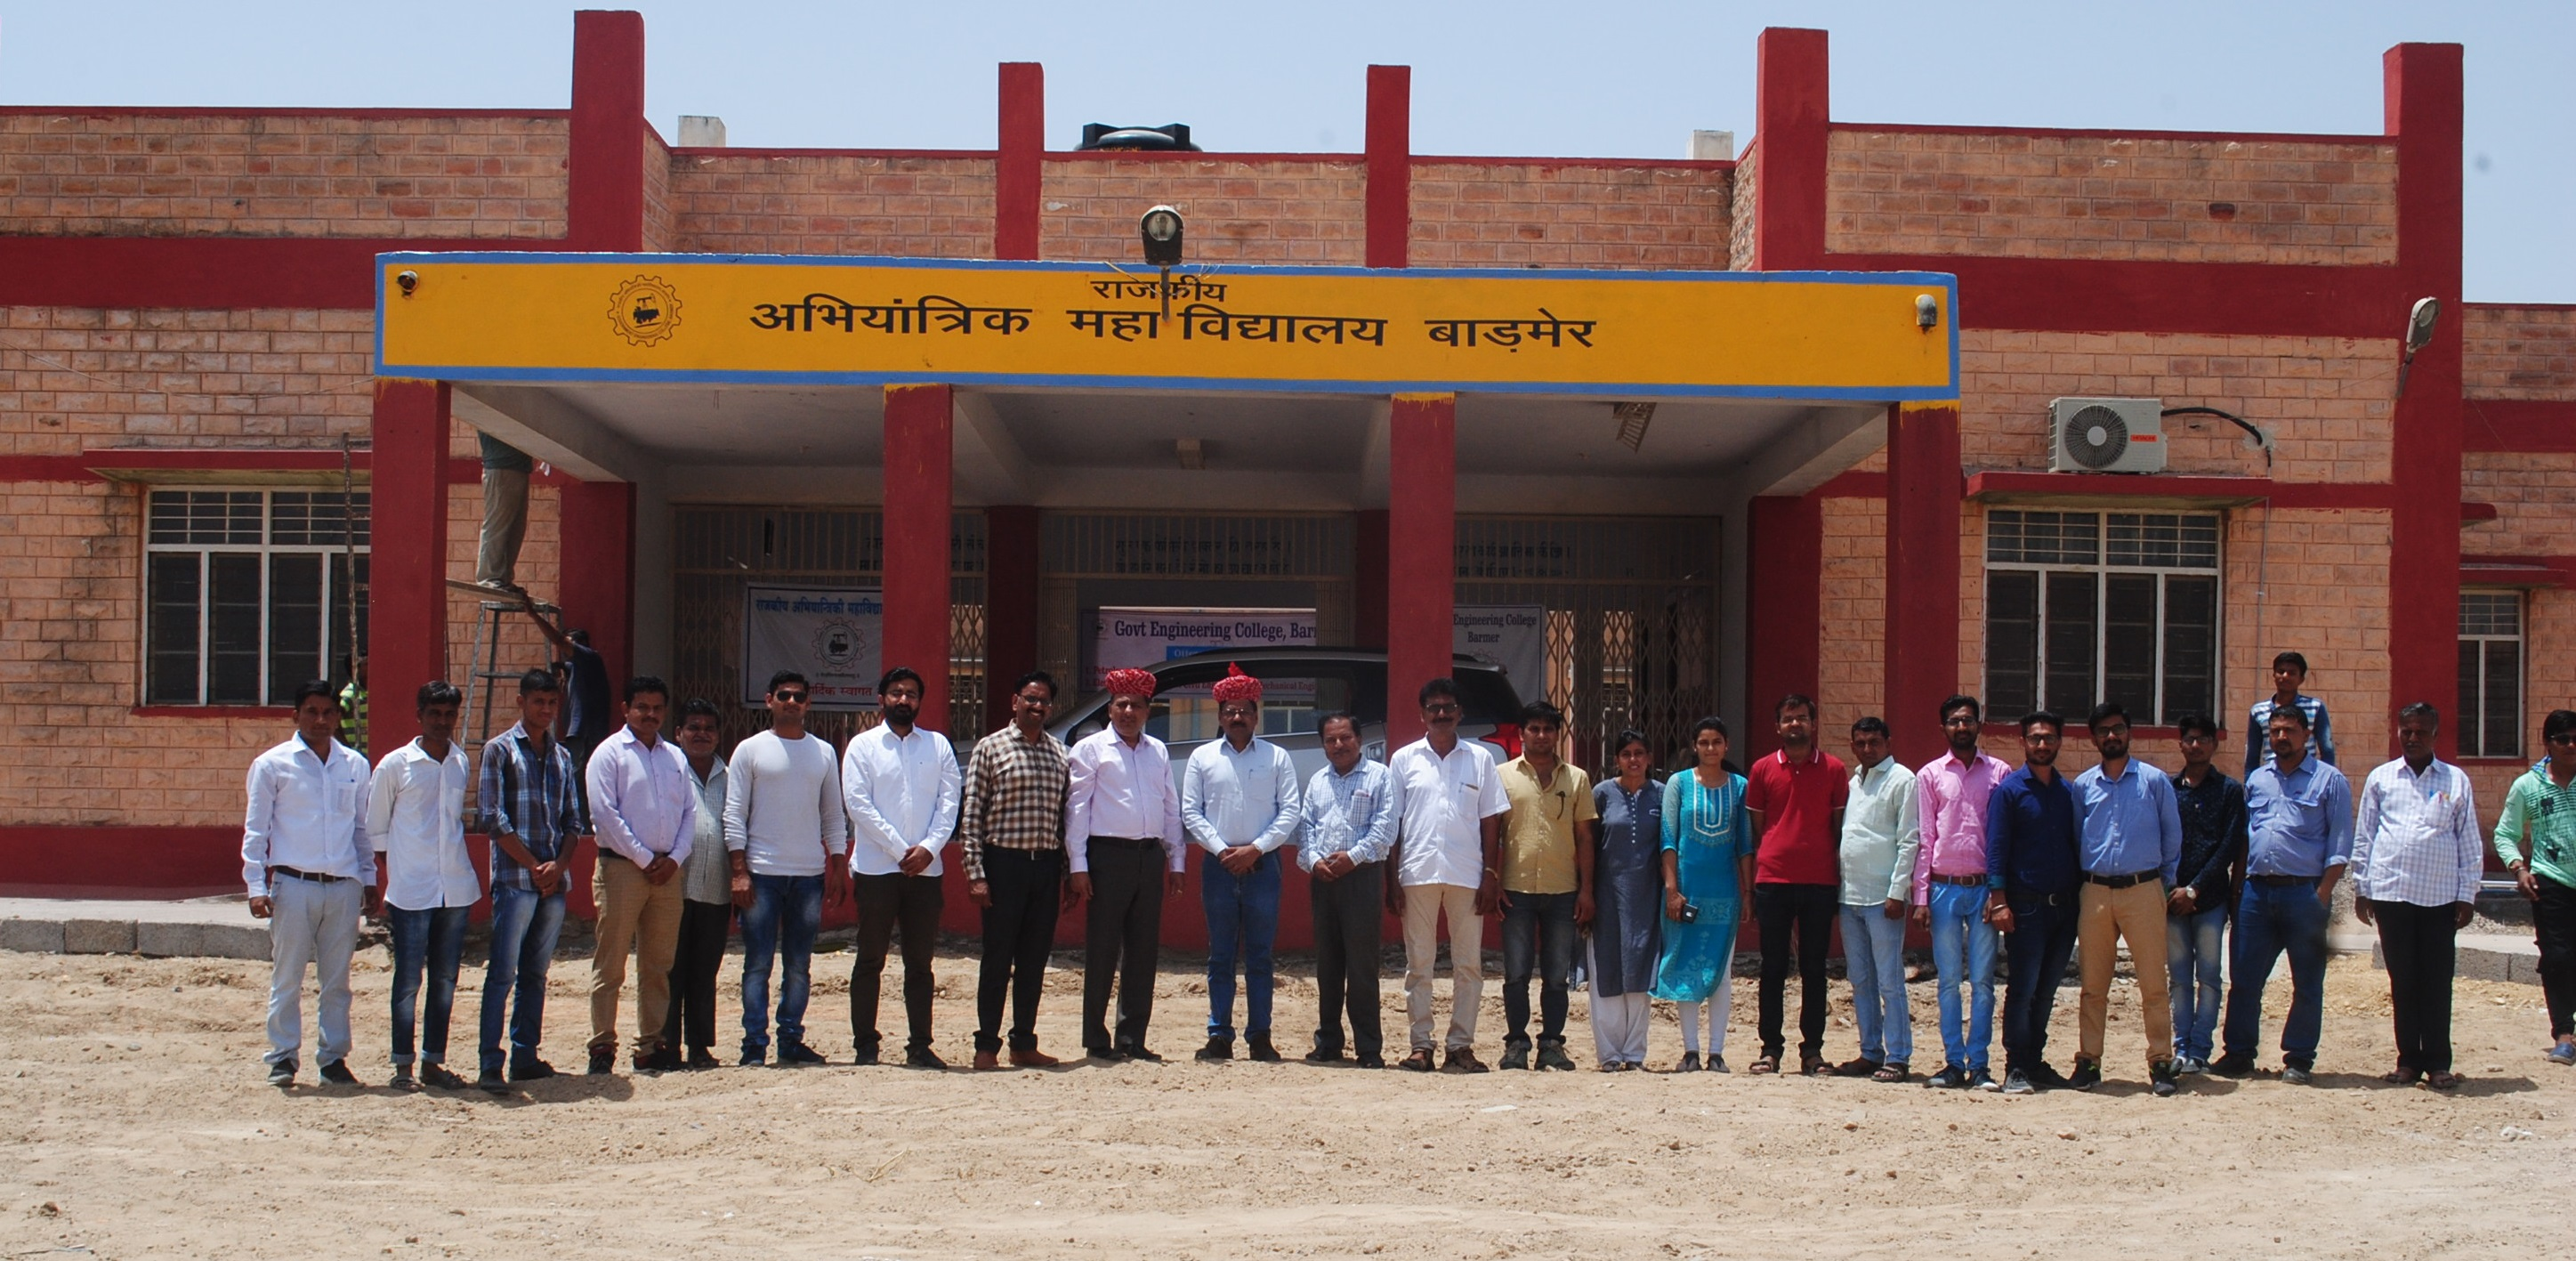 Government Engineering College, Barmer Image